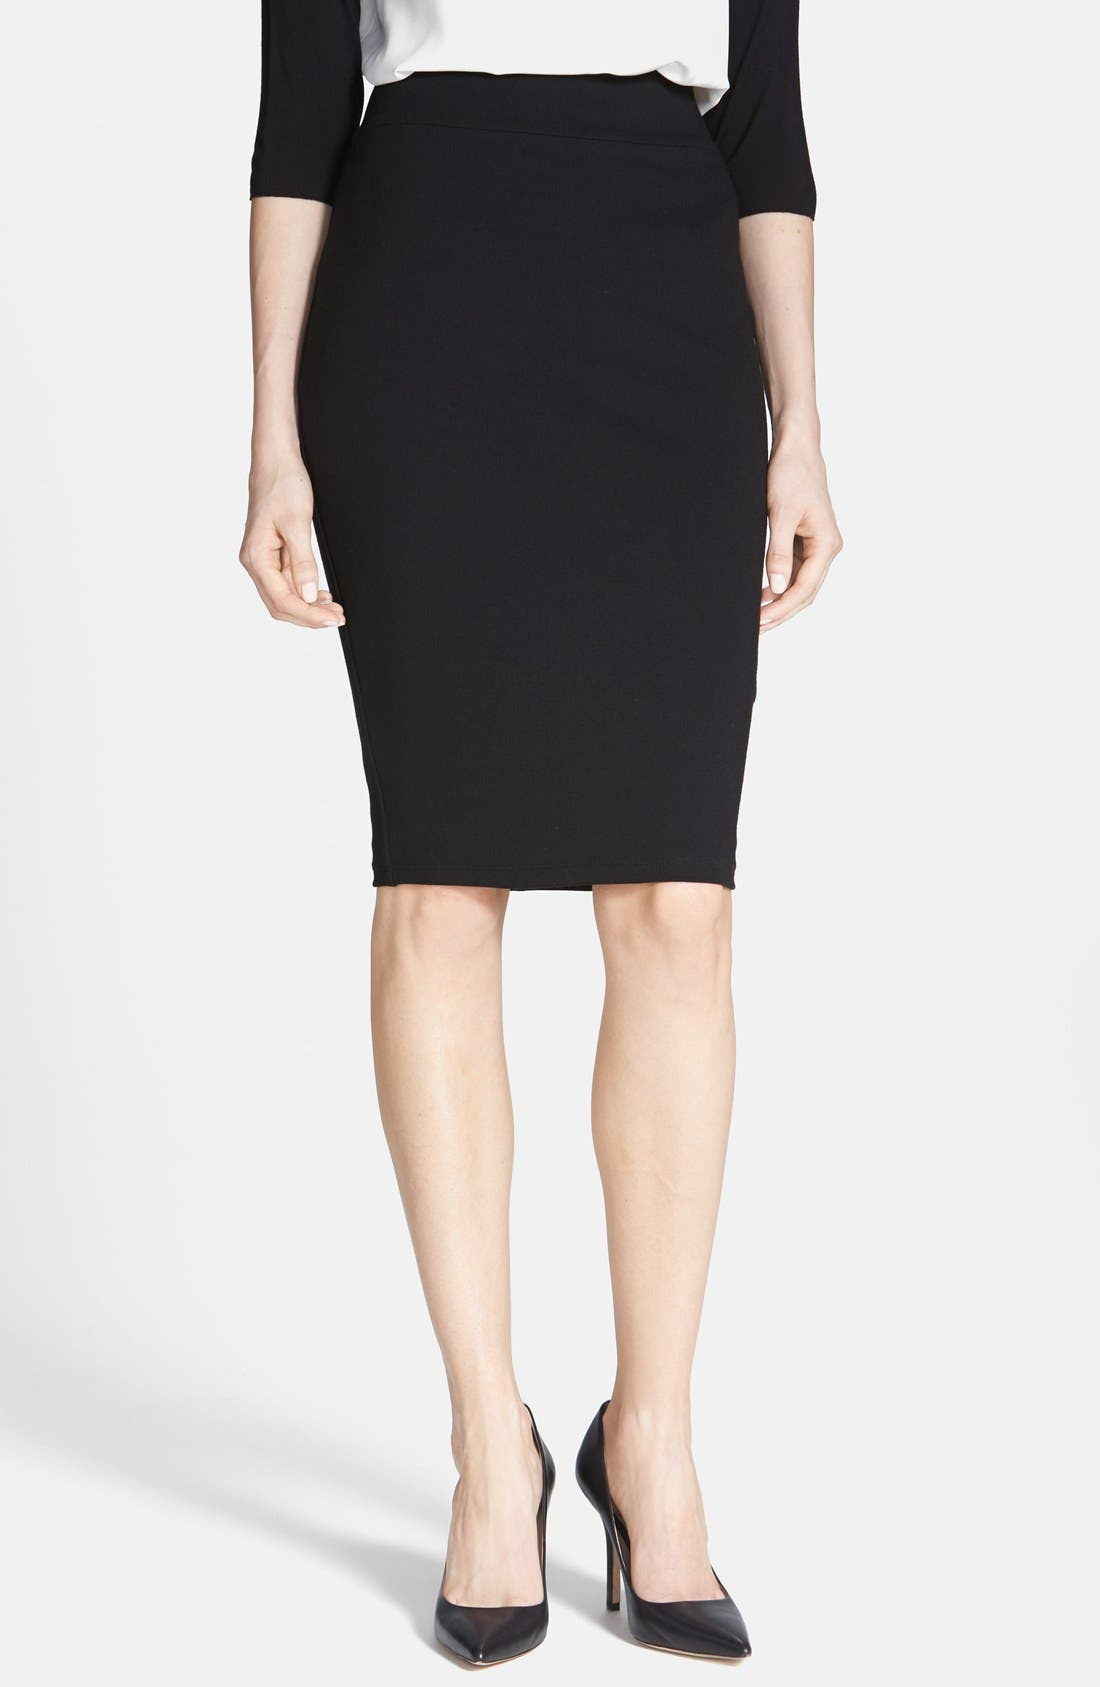 Main Image - Bailey 44 'Style Me' Knit Pencil Skirt